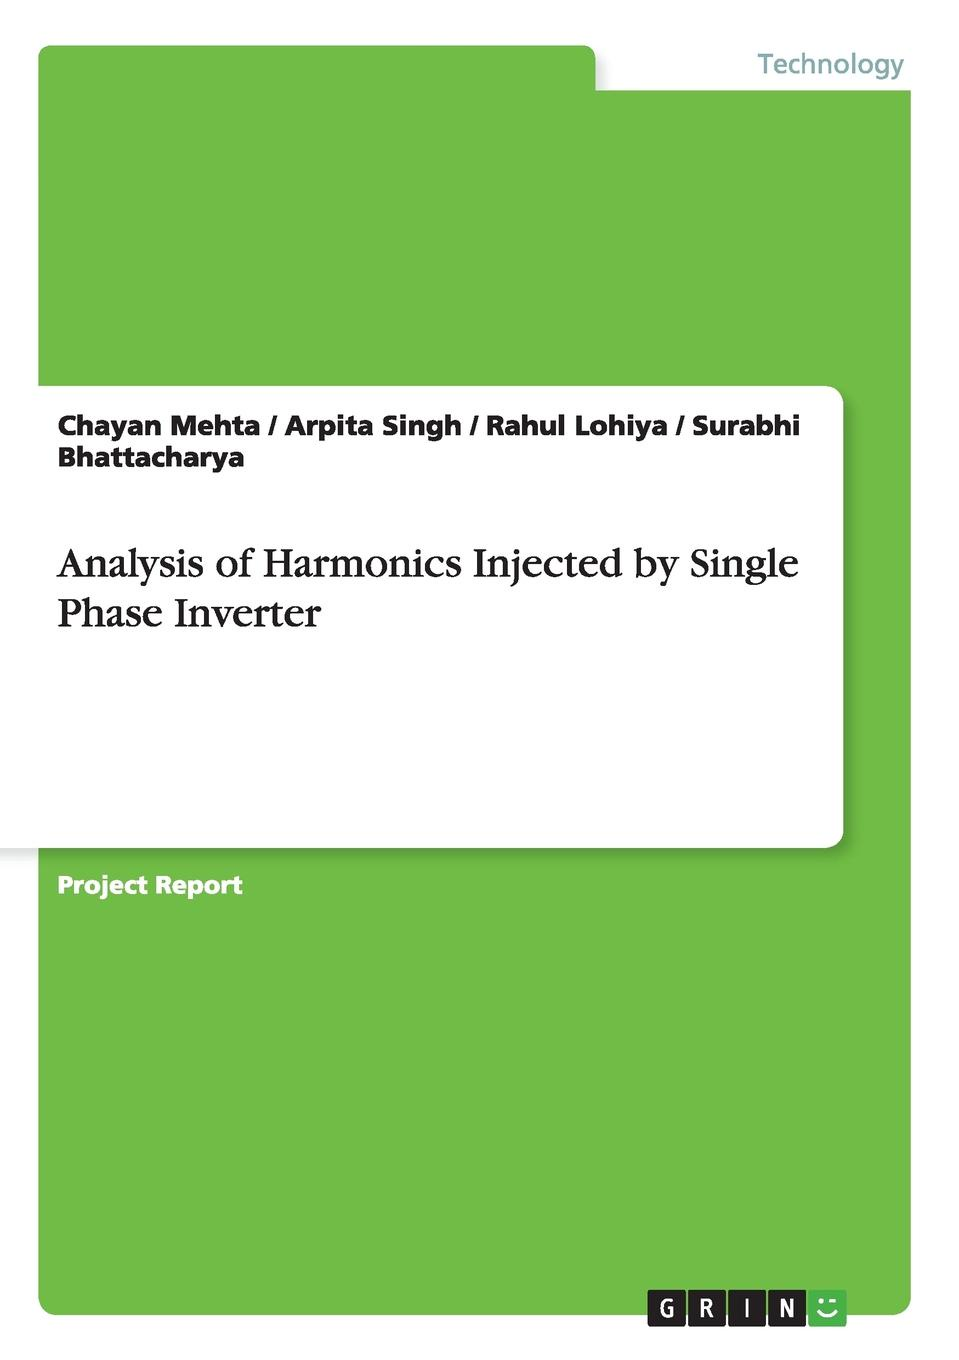 цена на Chayan Mehta, Arpita Singh, Rahul Lohiya Analysis of Harmonics Injected by Single Phase Inverter